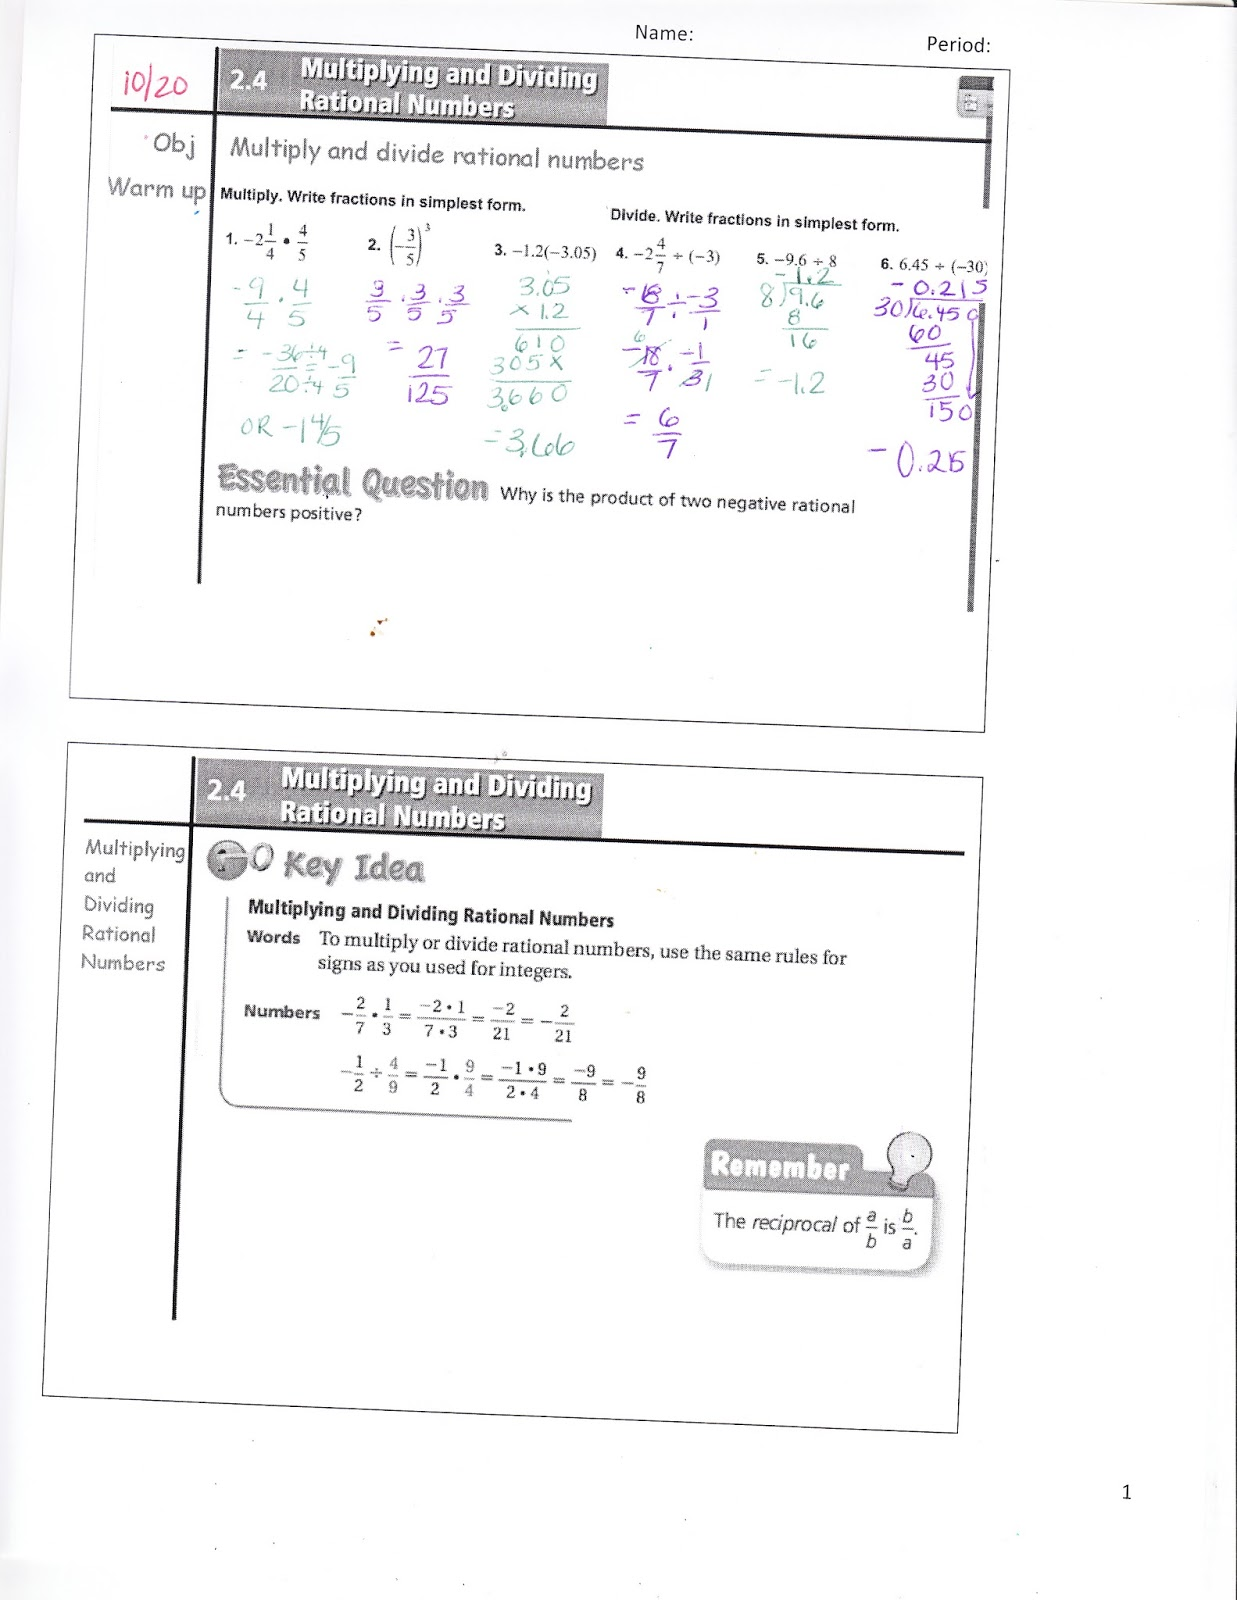 Ms. Jean's Classroom Blog: Math 7 2.4 Multiplying and